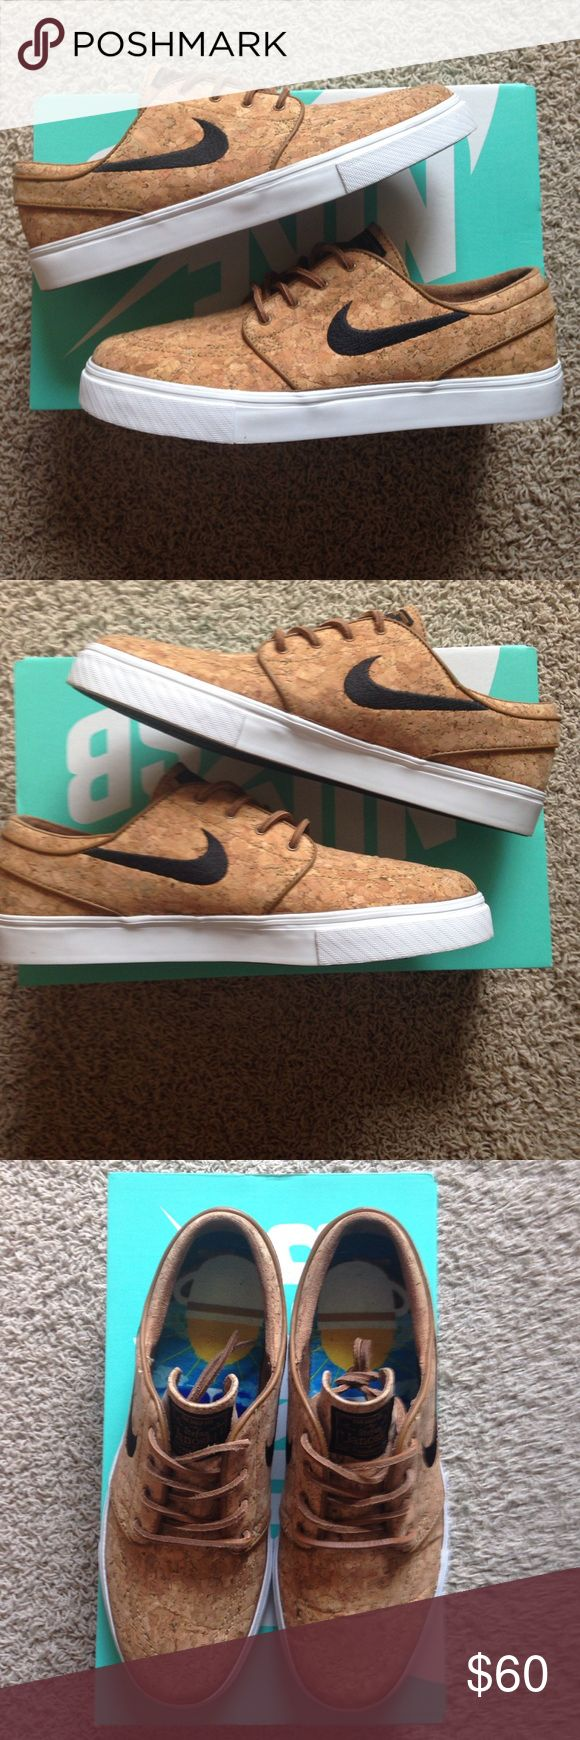 "Nike Zoom Stefan Janoski Elite ""Cork"" Only worn a few times. Little signs of wear. A shoe not many have seen and are sure to get compliments. Nike Shoes Sneakers"